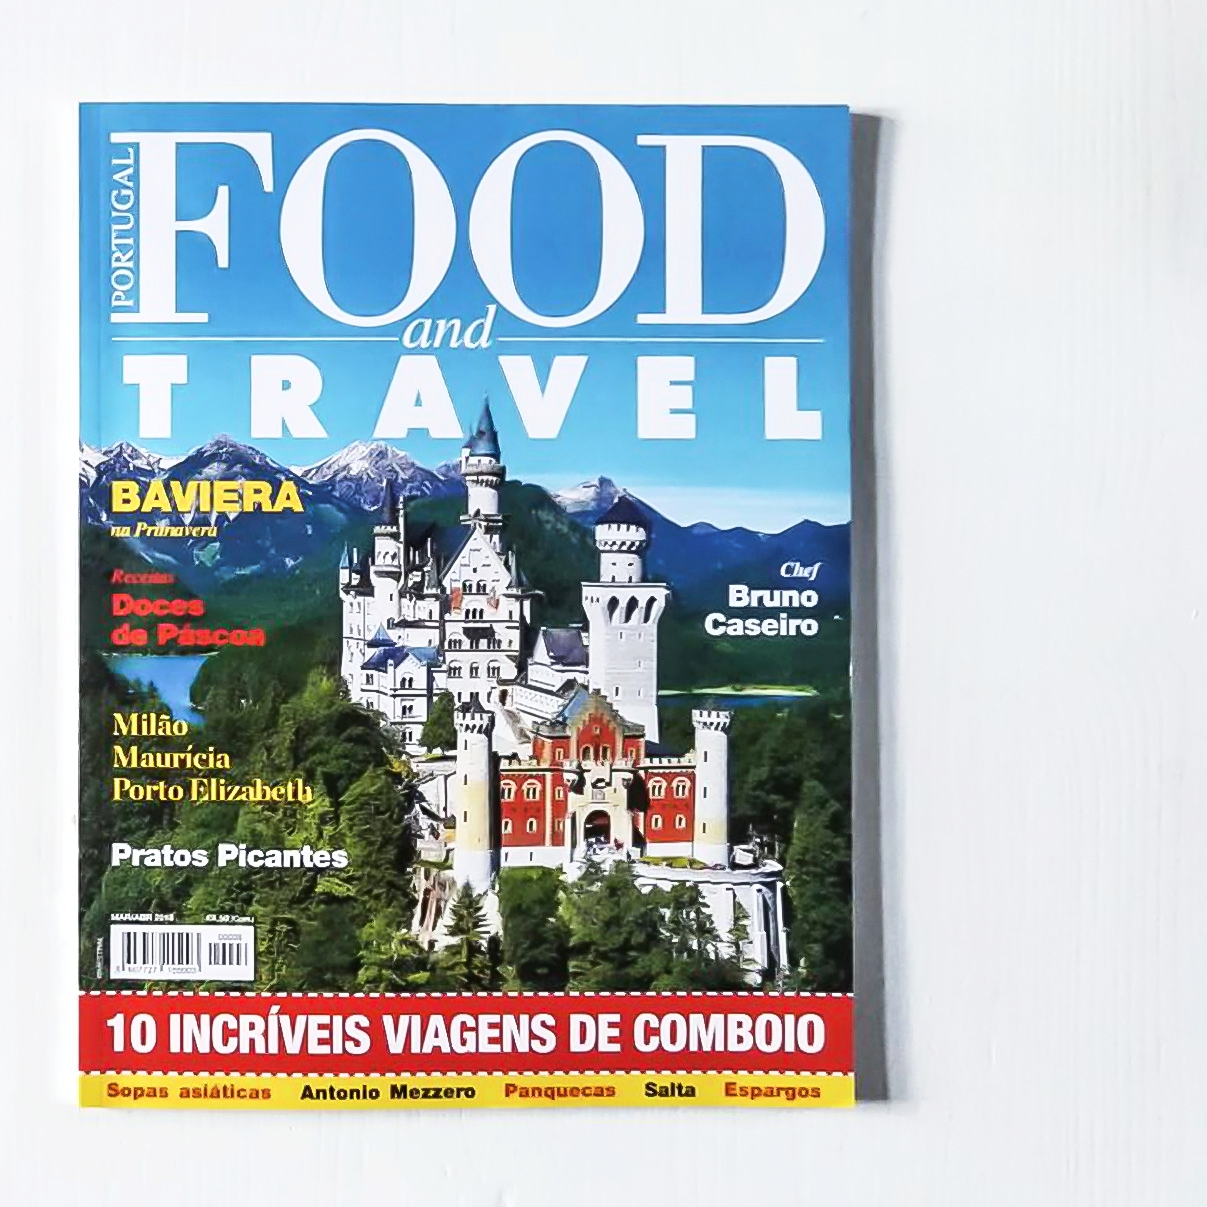 foodTravel1 copy.jpg